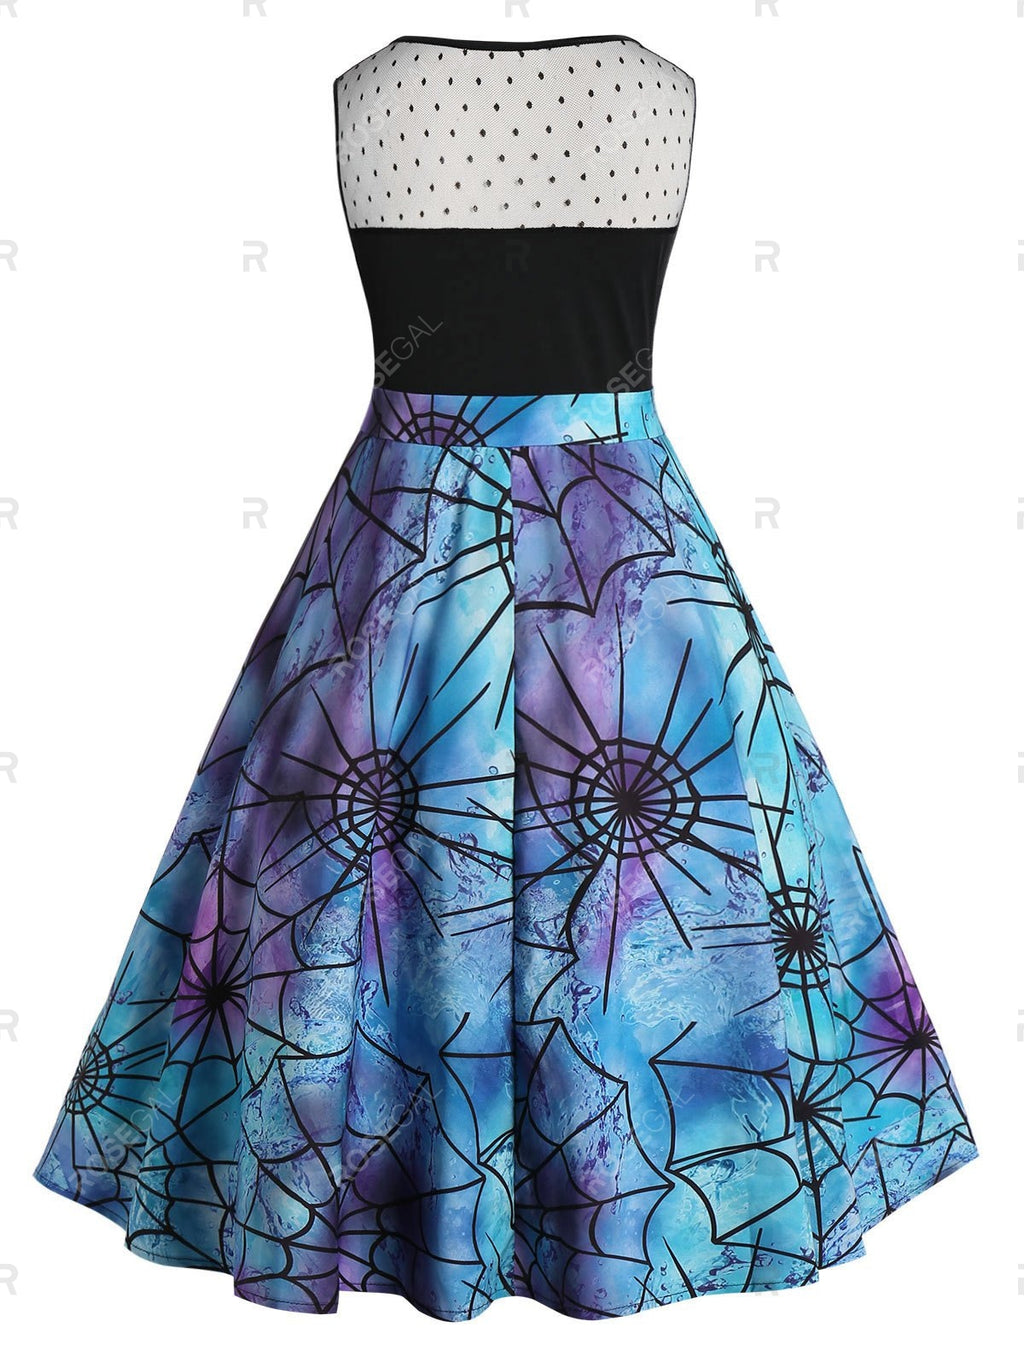 Spider Web Print Vintage Halloween Party Dress